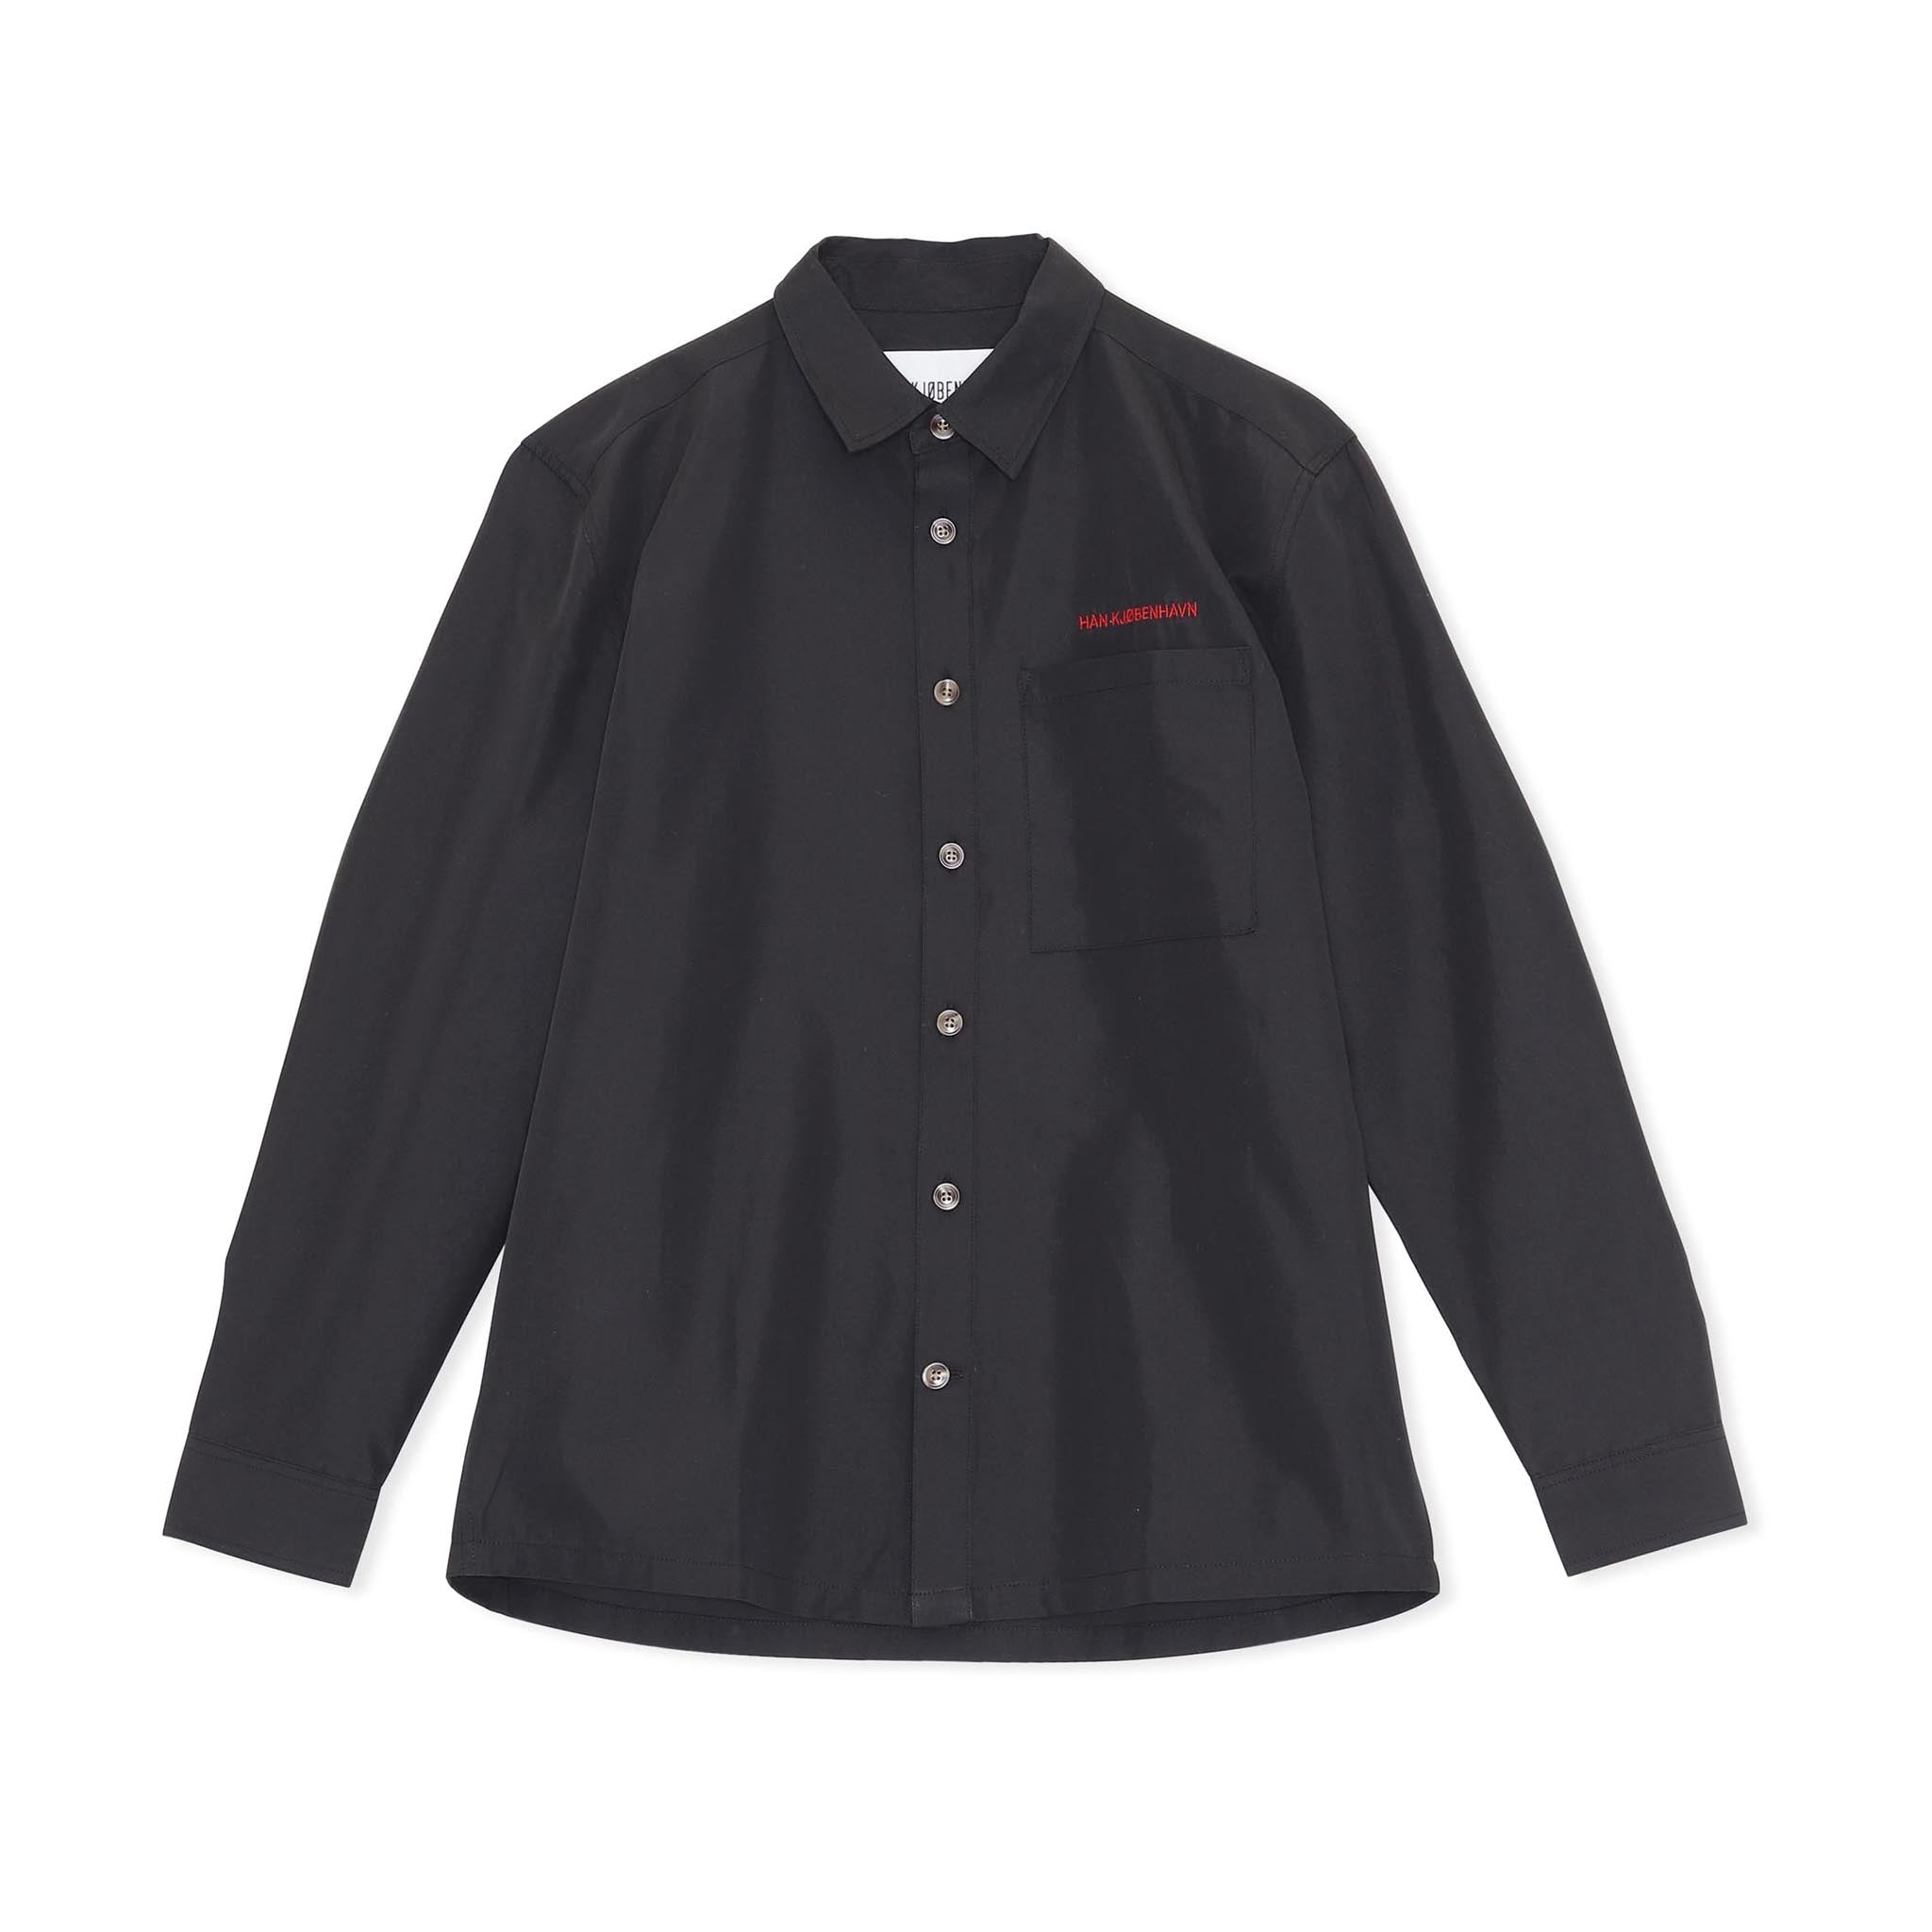 Han Kjobenhavn 'Social Resort' Boxy Shirt Black Twill